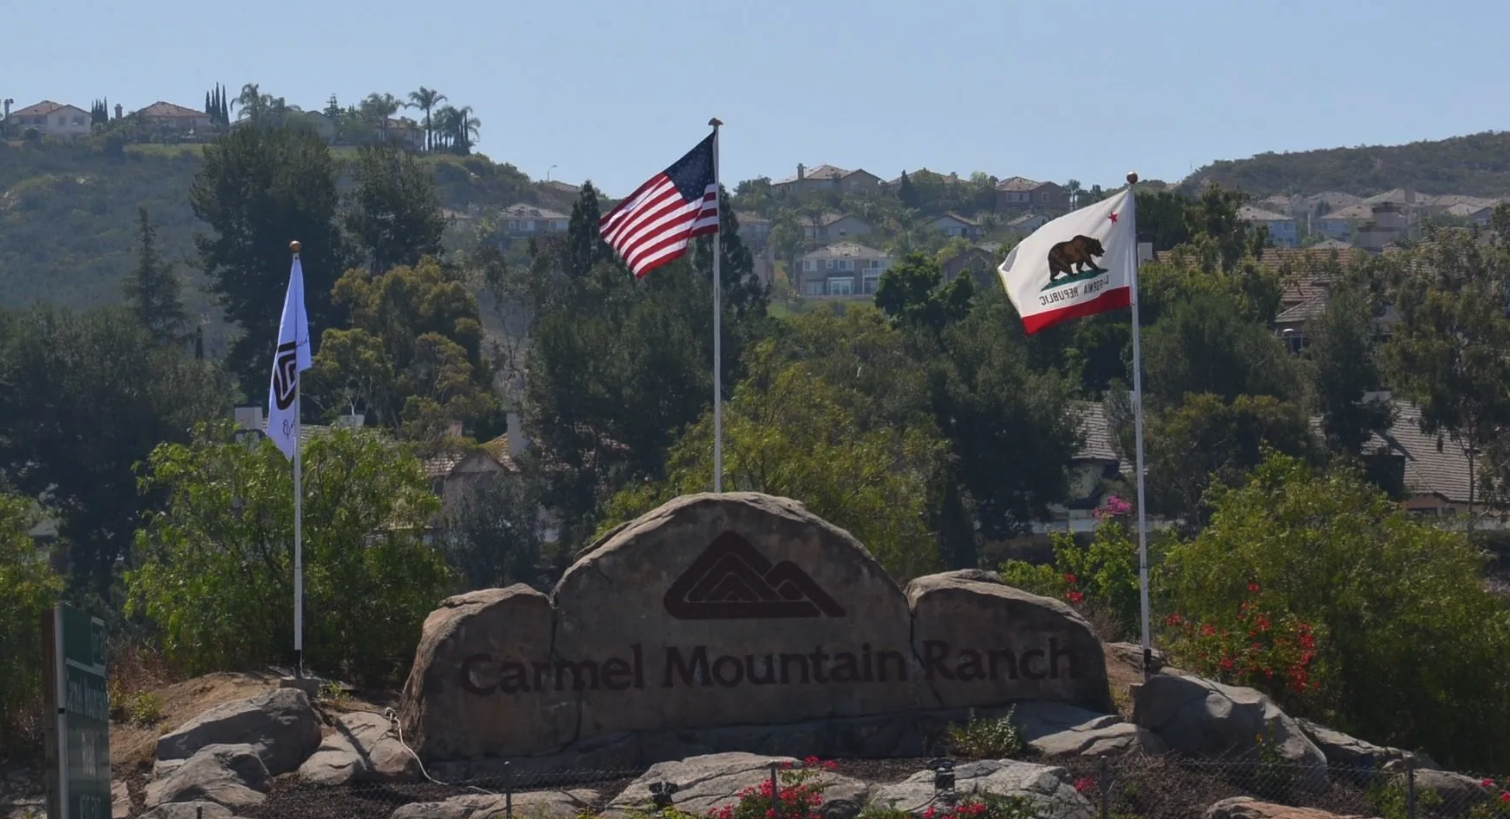 Save Carmel Mountain Ranch from development!